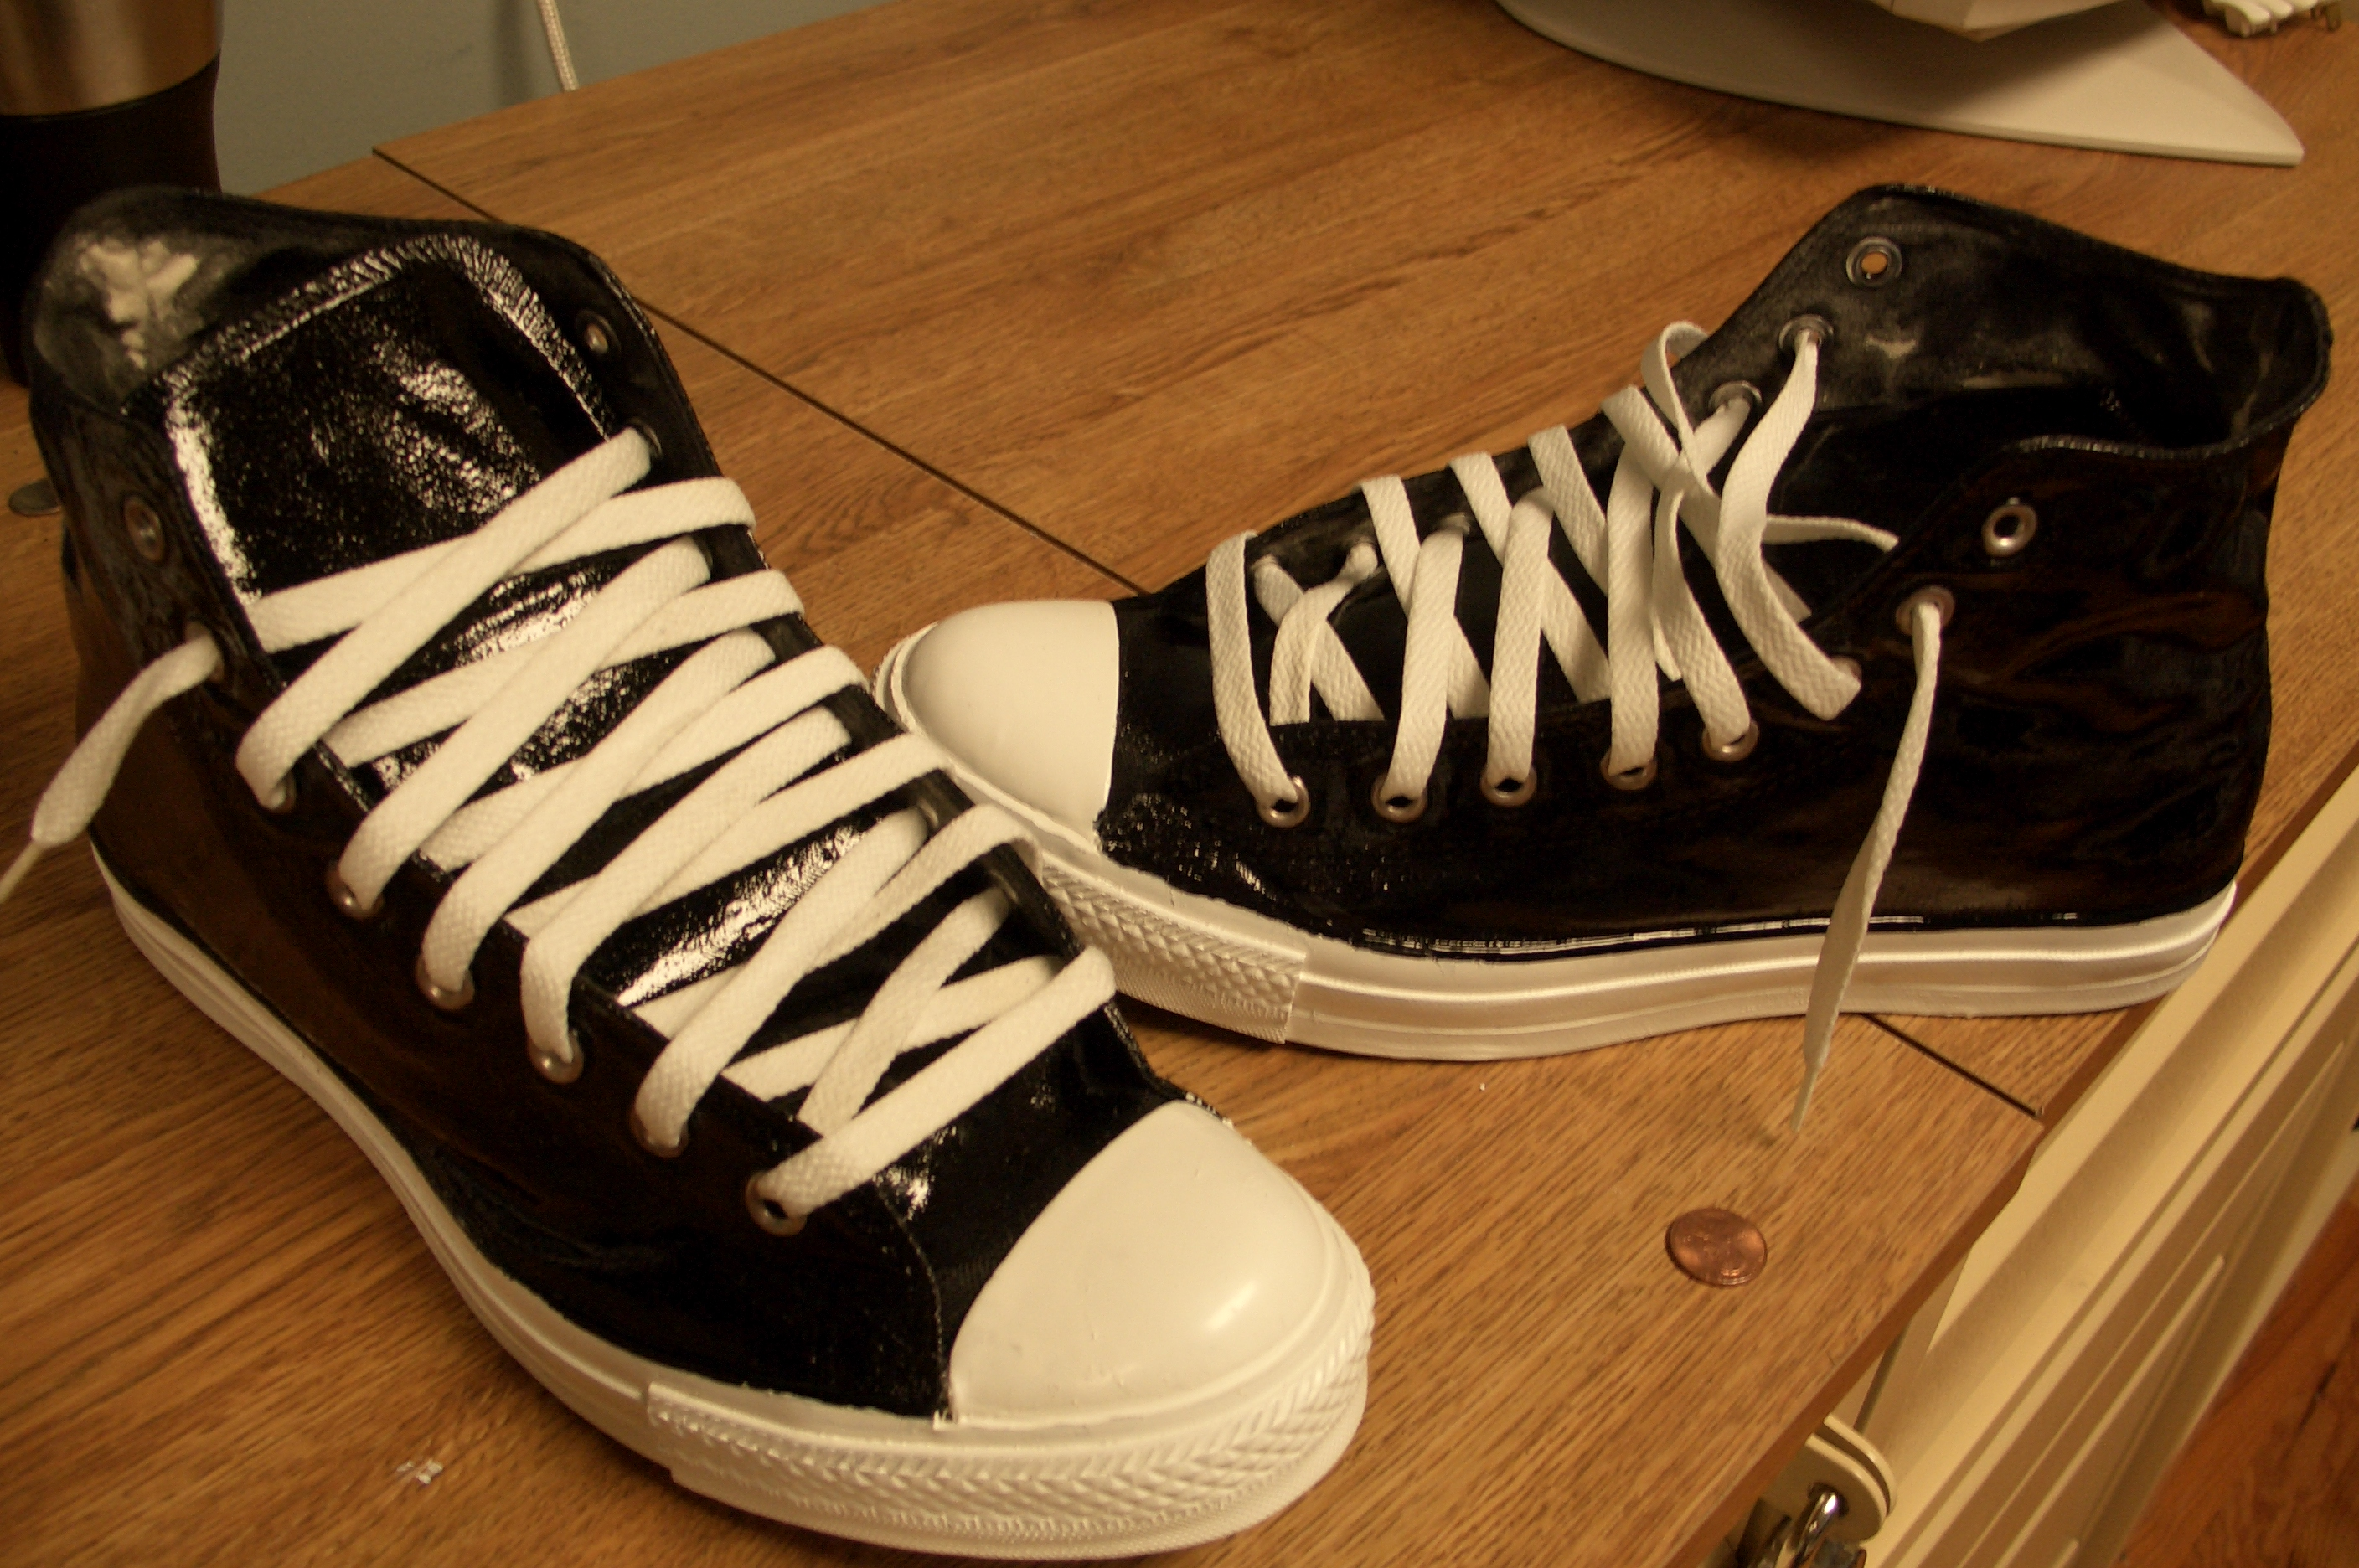 File:Summerall Guard painted Converse.jpg Wikimedia Commons